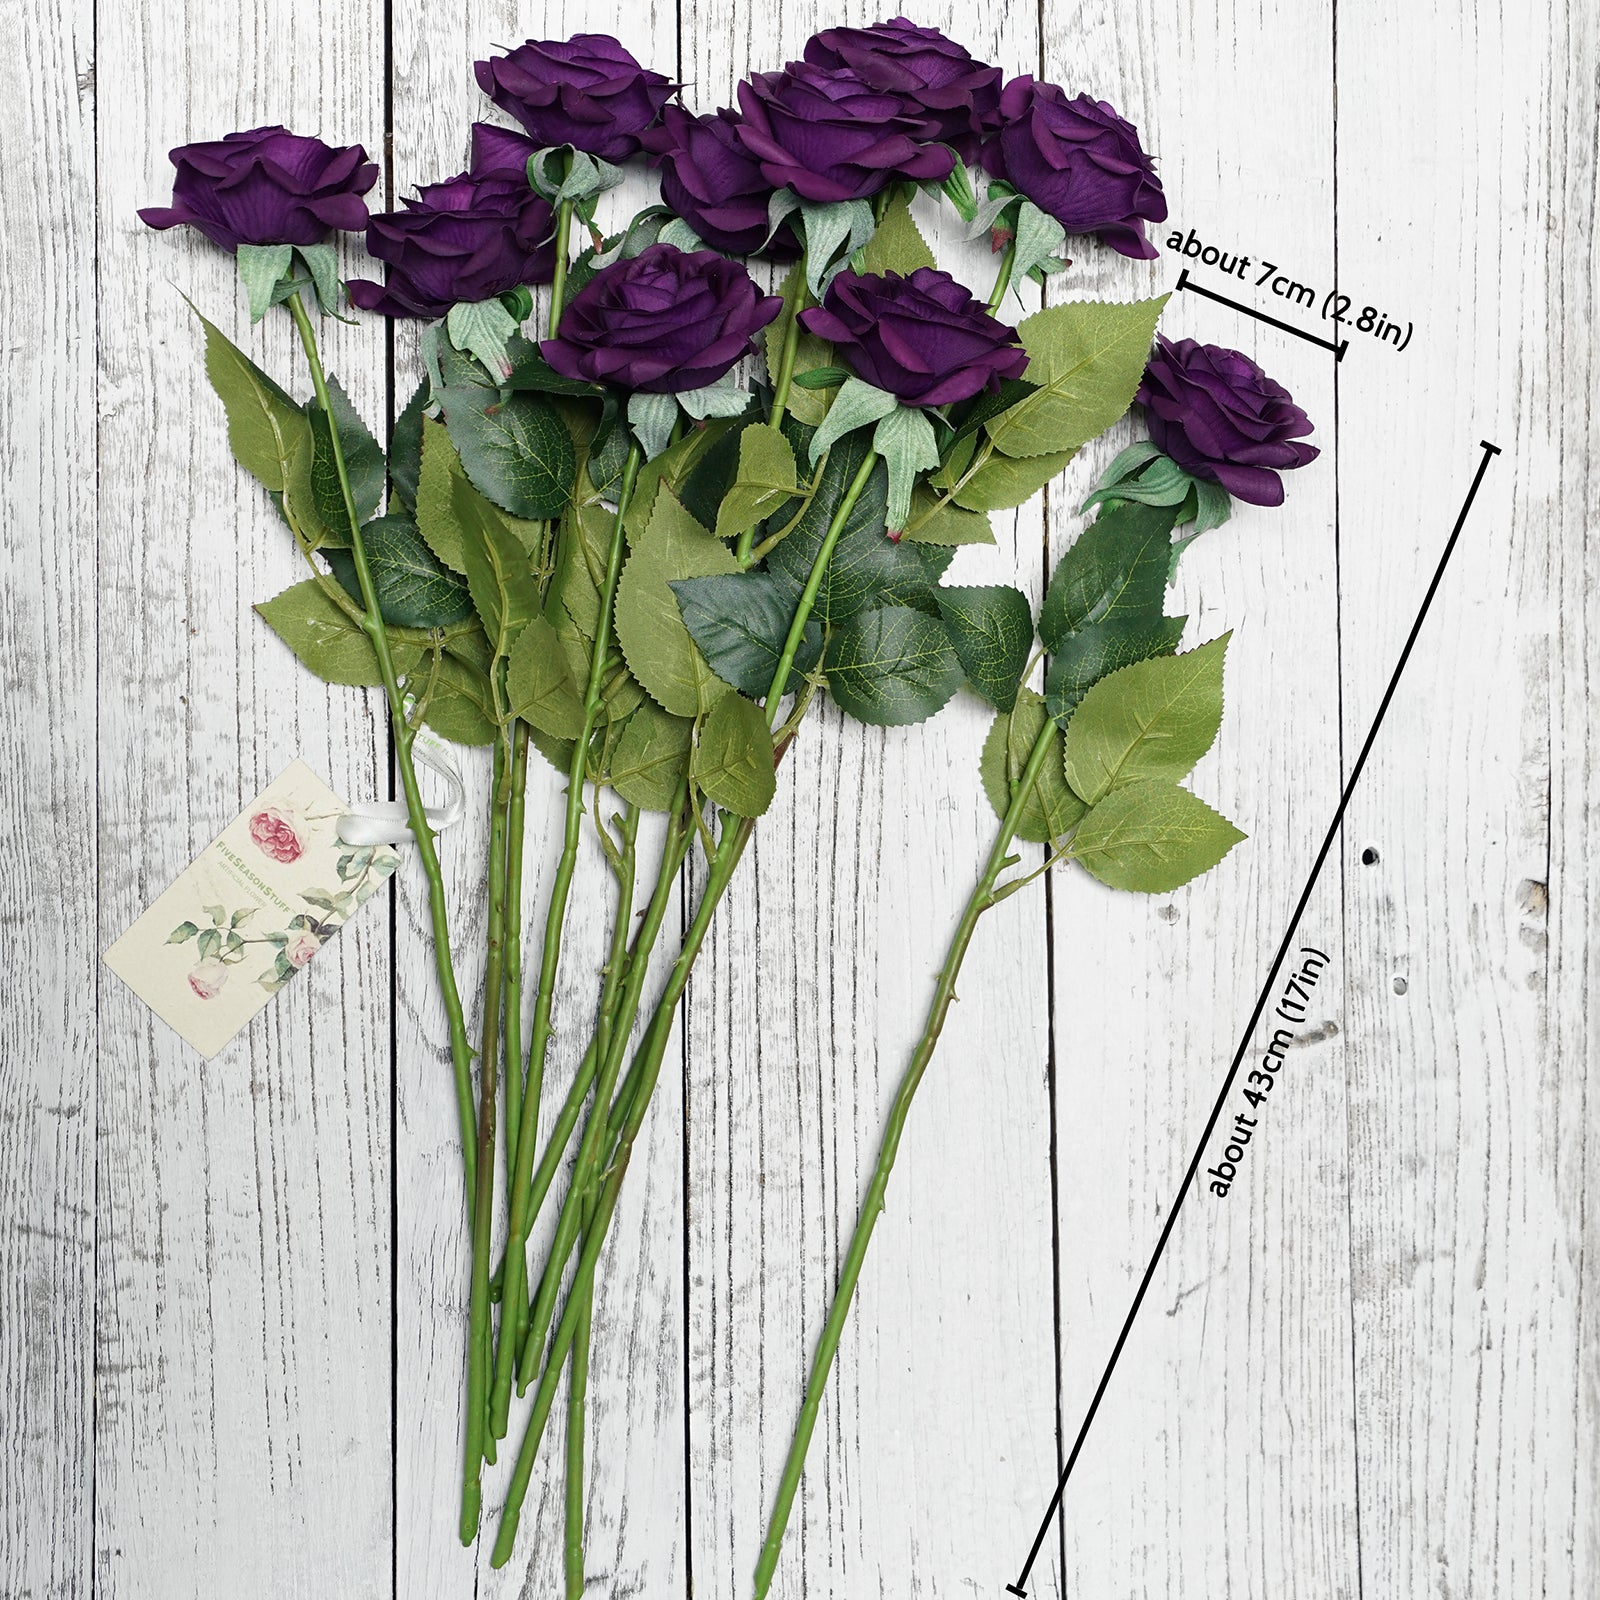 Real Touch 10 Stems Dark Purple Silk Artificial Roses Flowers 'Petals Feel and Look like Fresh Roses'